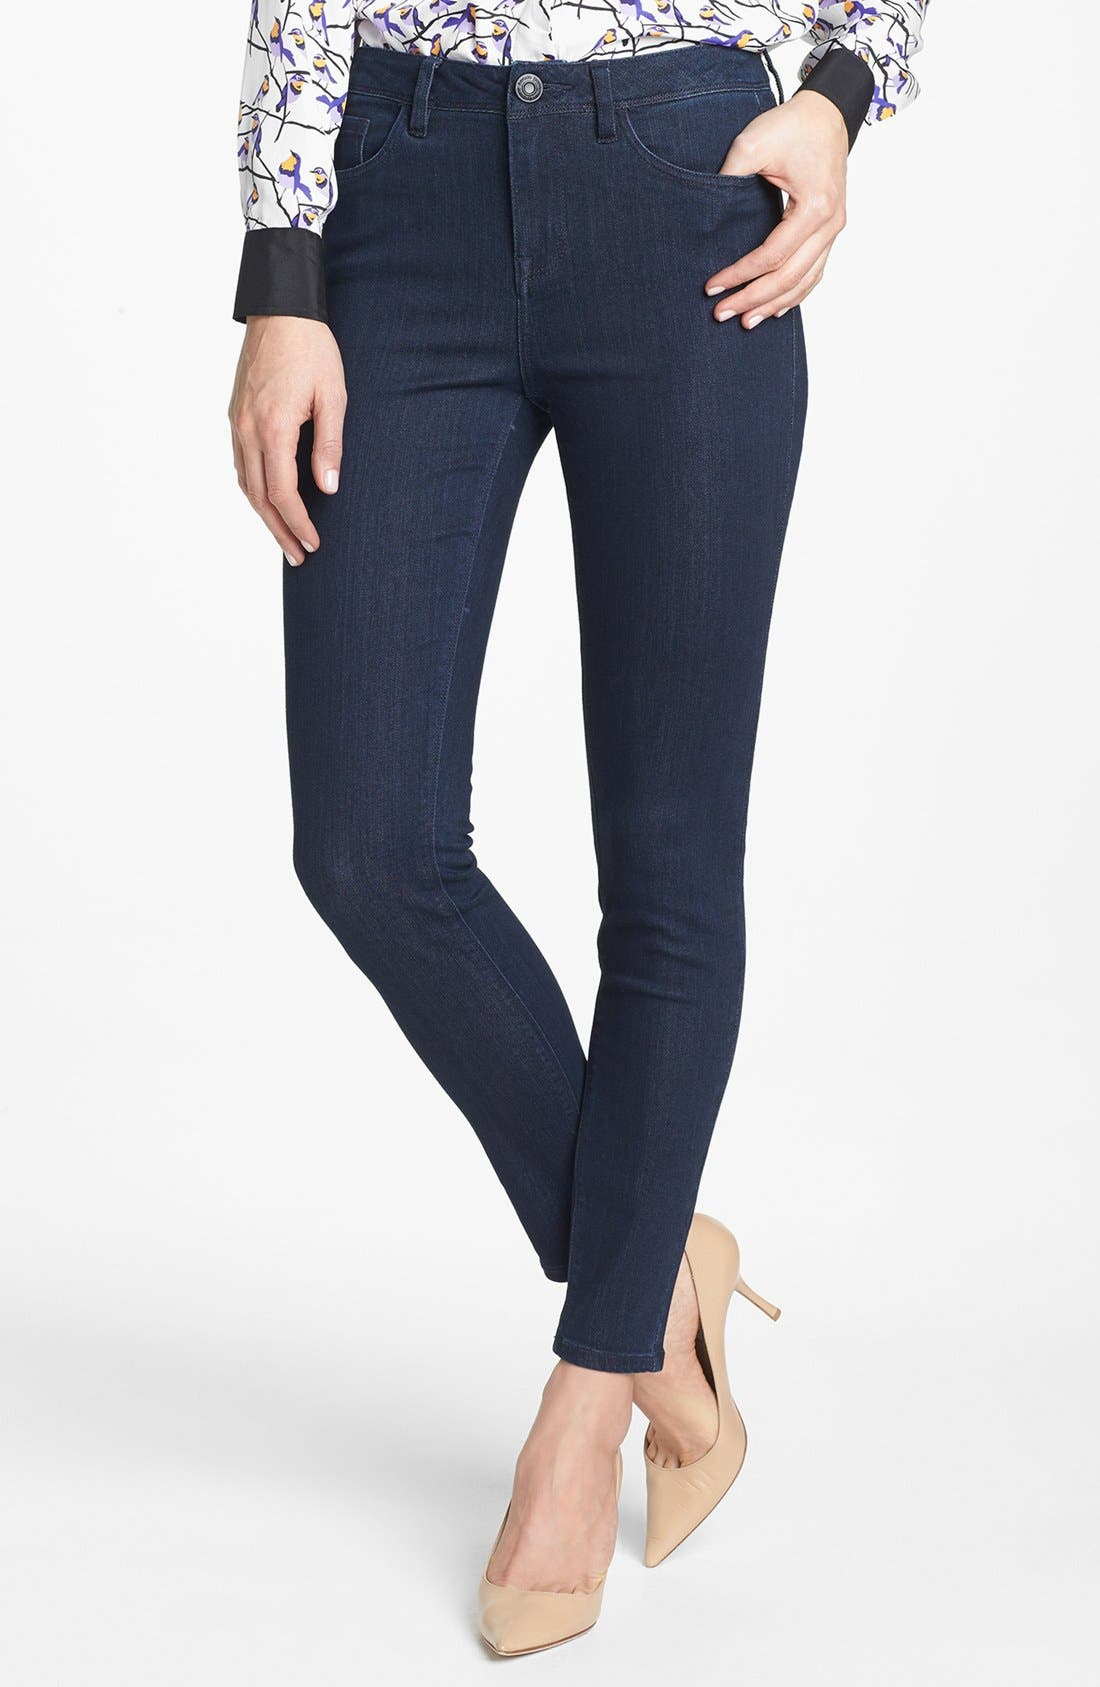 KENSIE 'Ankle Biter' High Rise Skinny Jeans, Main, color, 427